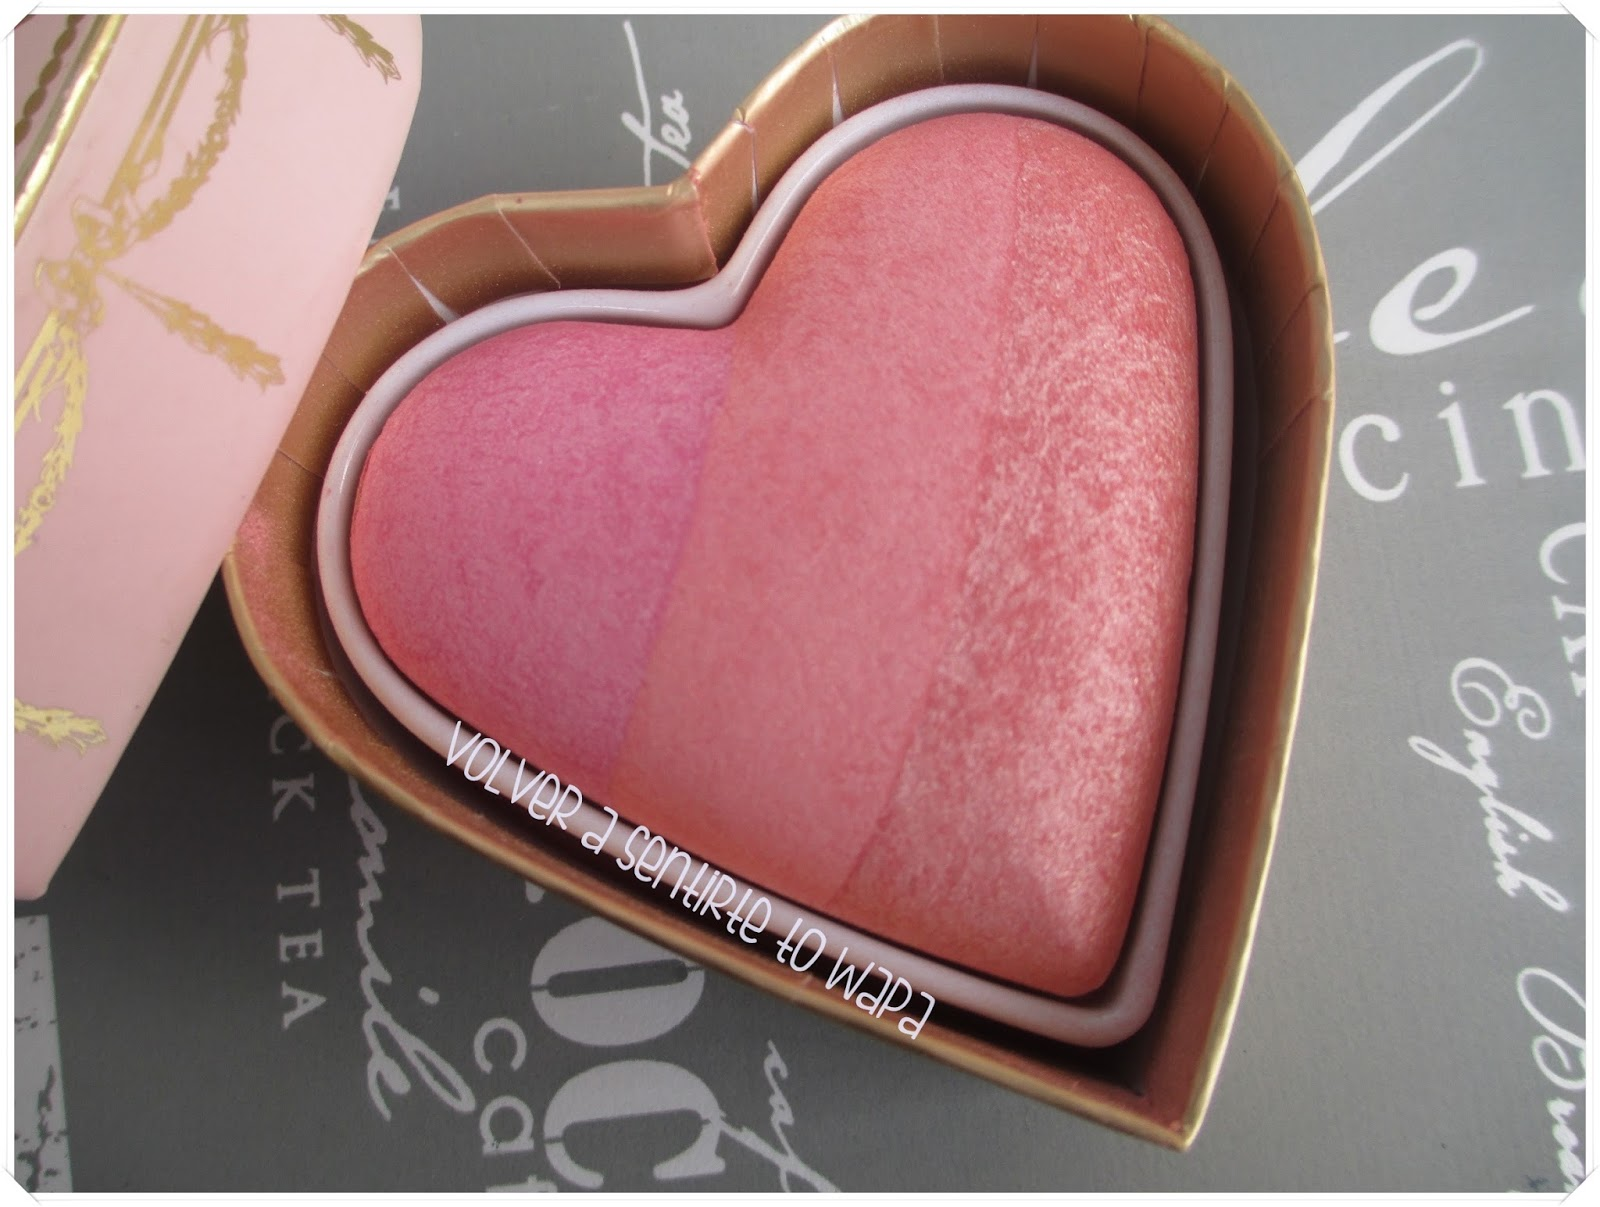 Sweethearts Candy Glow de Too Faced